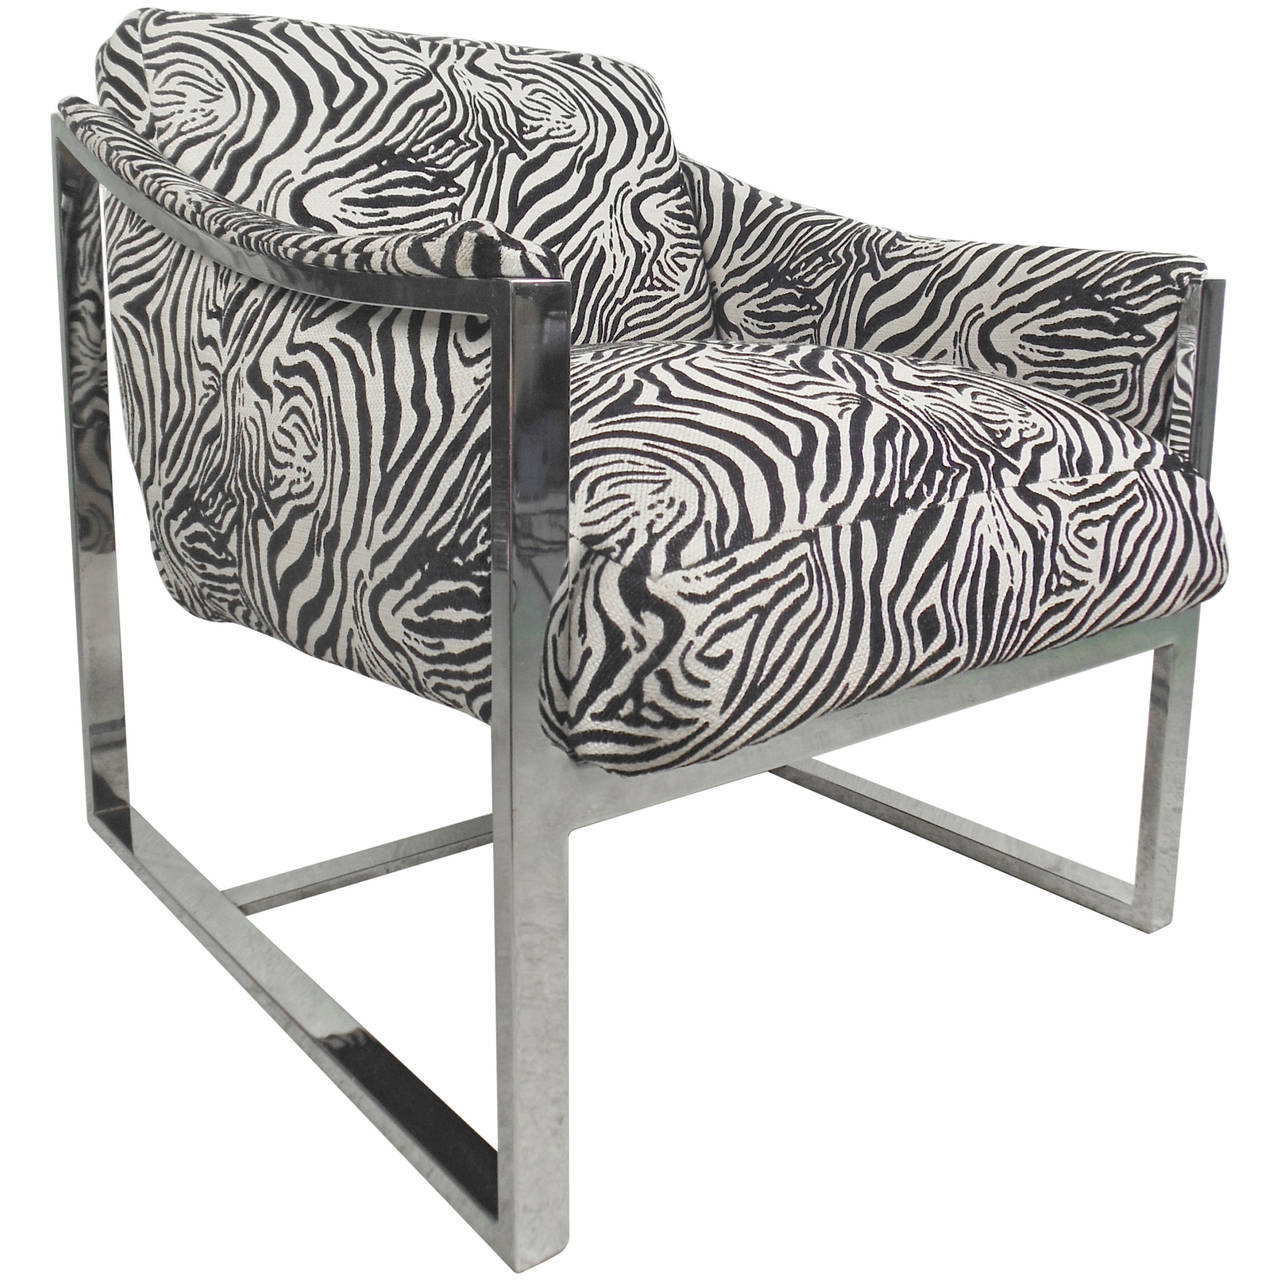 Vintage chrome lounge chair with zebra print for sale